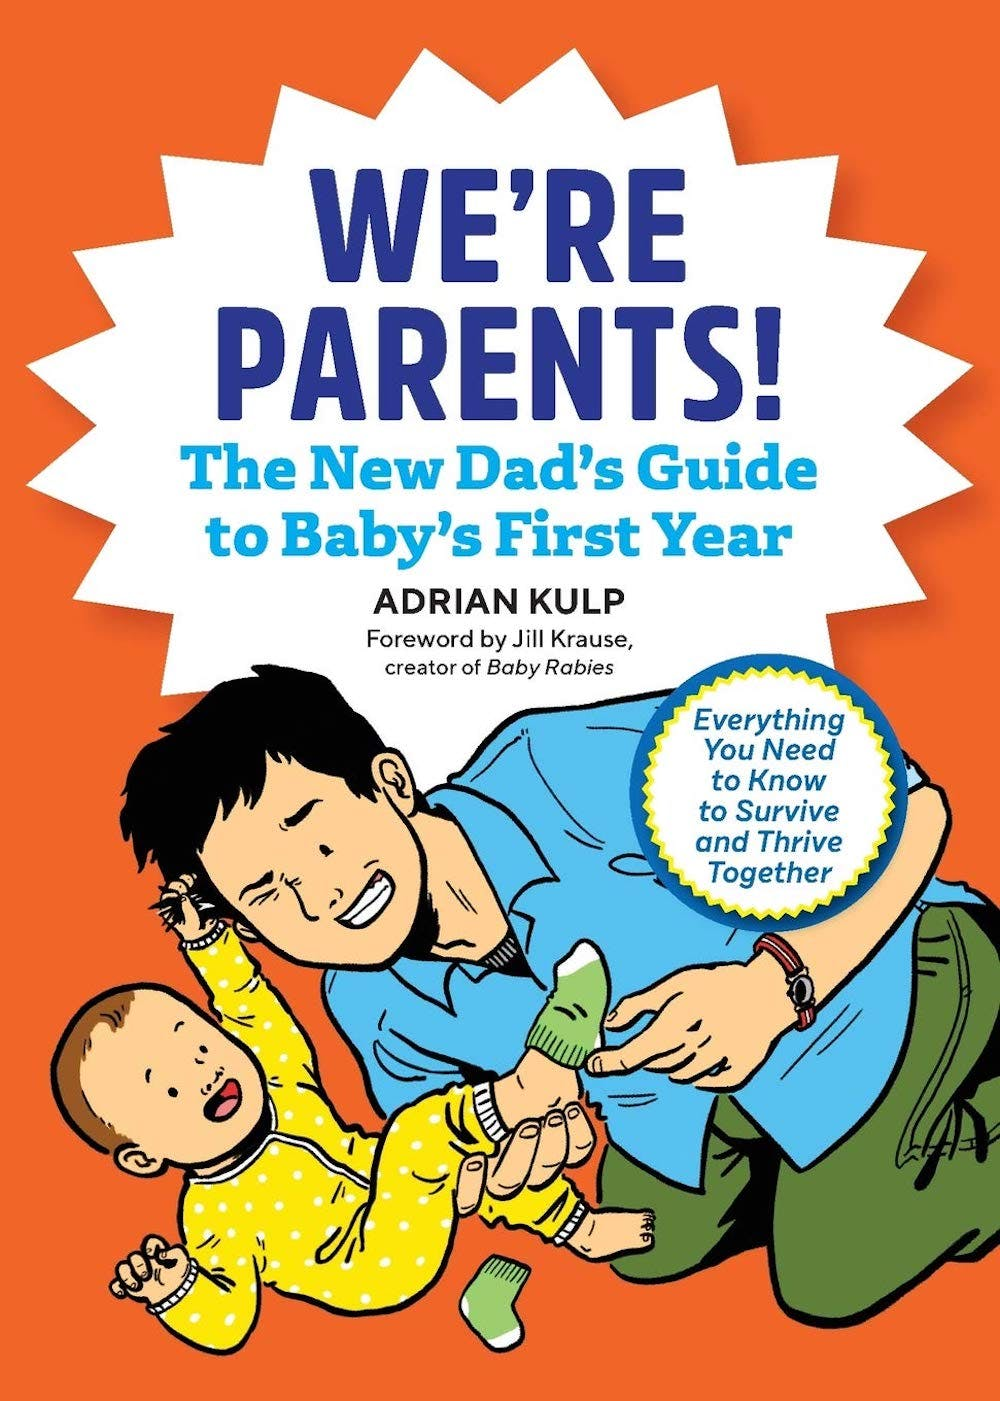 We're Parents! The New Dad Book for Baby's First Year: Everything You Need to Know to Survive and Thrive Together book cover